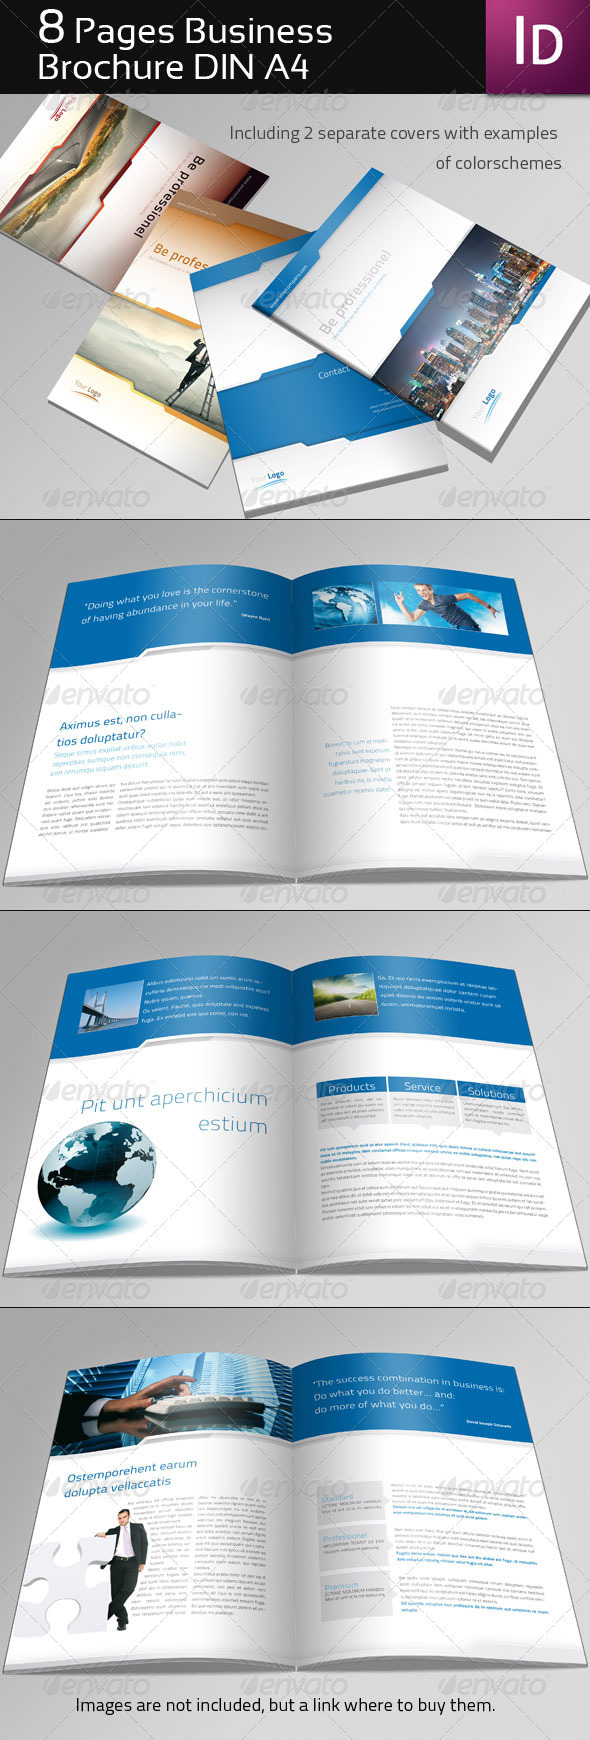 8 page business brochure graphicriver for 2 page brochure template